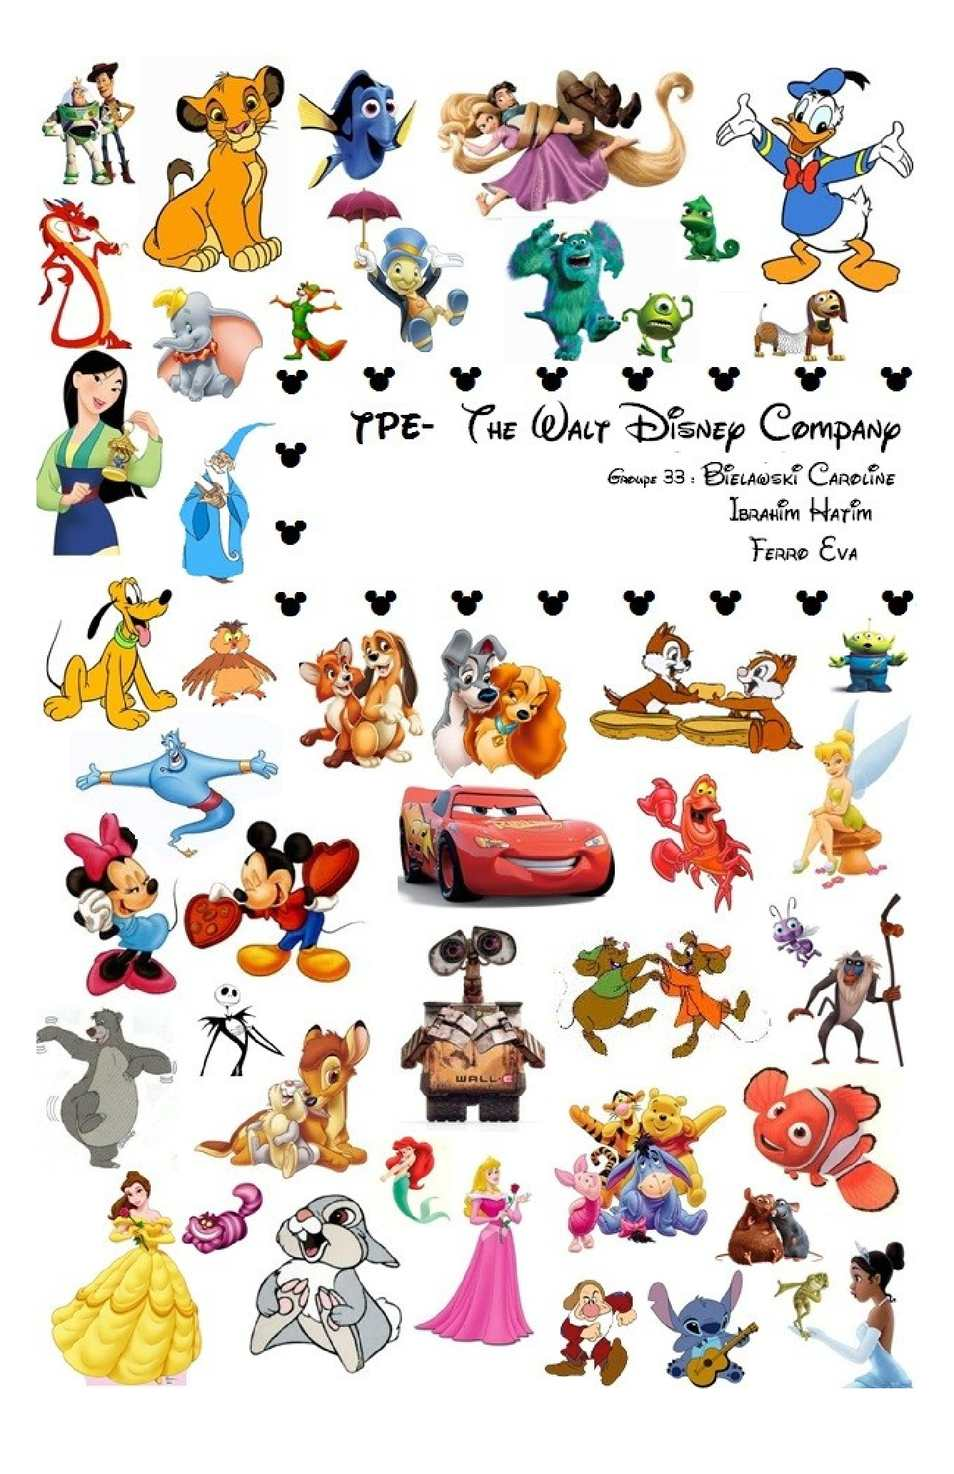 Disney.com   The official home for all things Disney